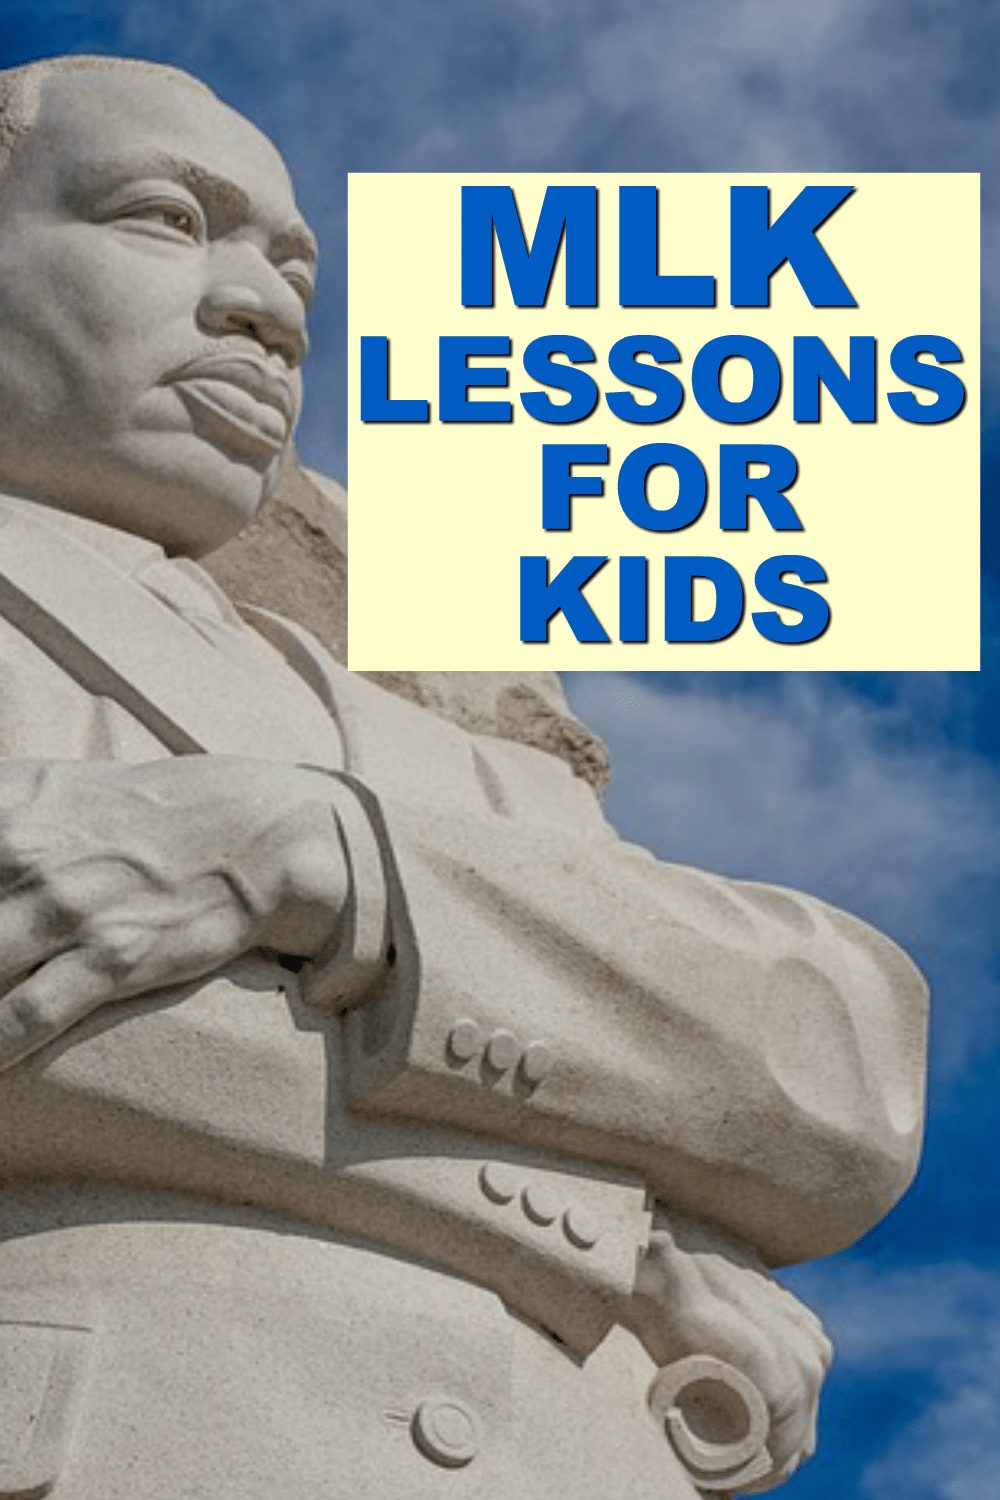 MLK ACTIVITIES FOR KIDS text over image of Martin Luther King Jr statue